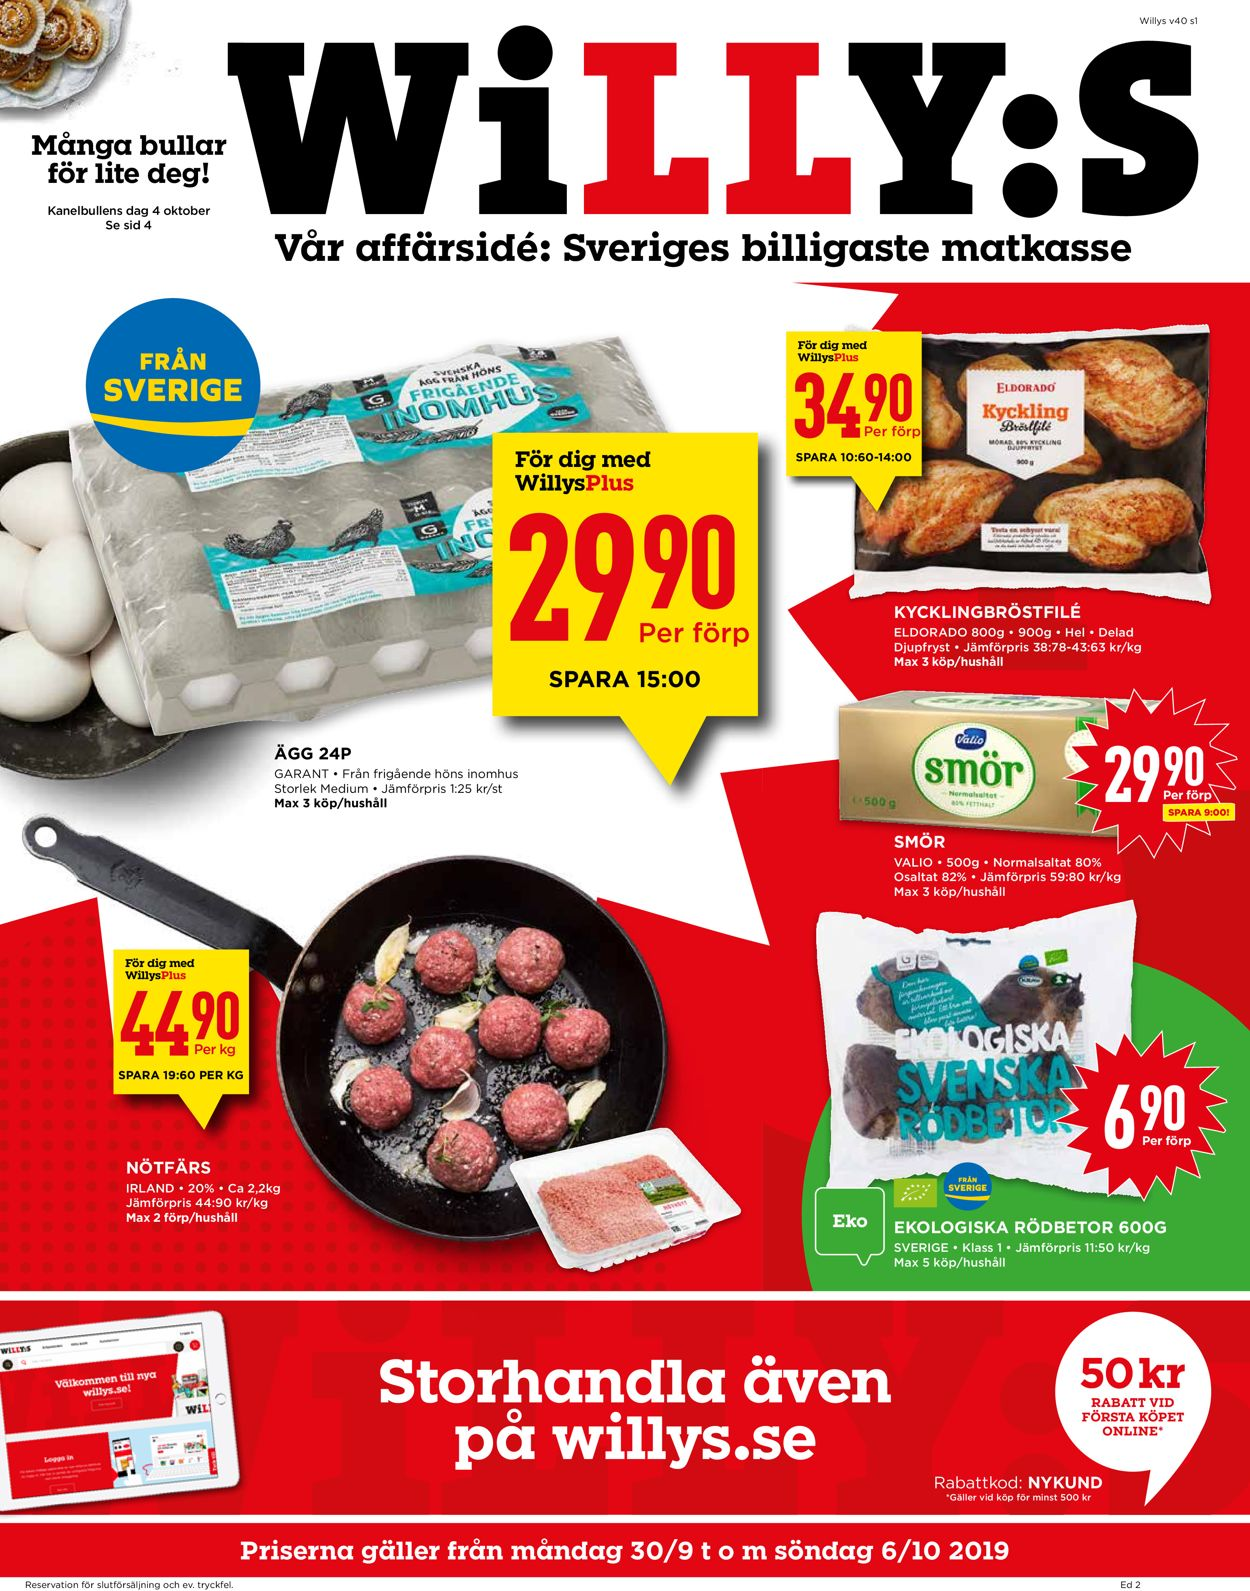 WiLLY:S - Reklamblad - 30/09-06/10-2019